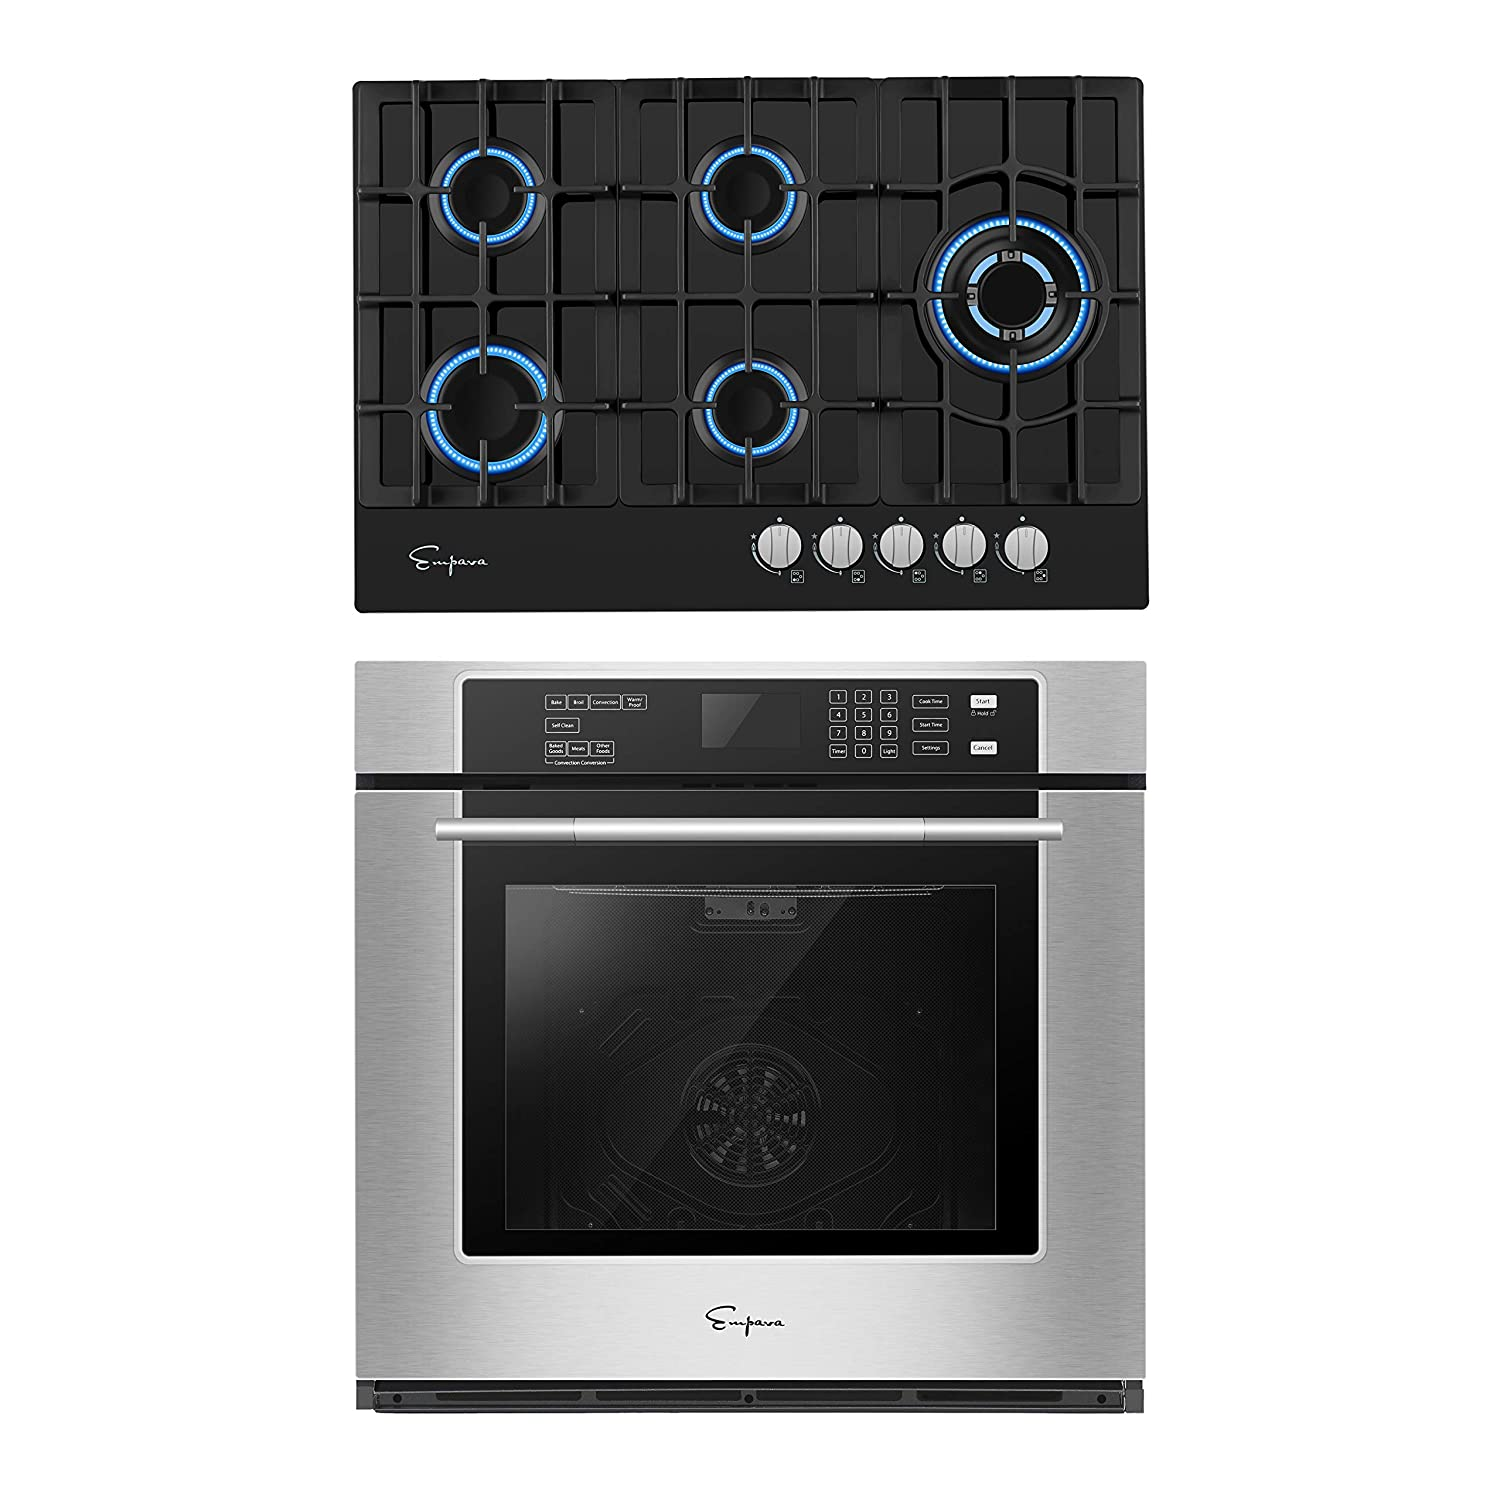 Empava 30 Inch Electric Single Wall Oven with Self-cleaning Convection Fan and Gas Cooktop Stove LPG/NG Convertible with 5 Italy SABAF Burners in Tempered Glass